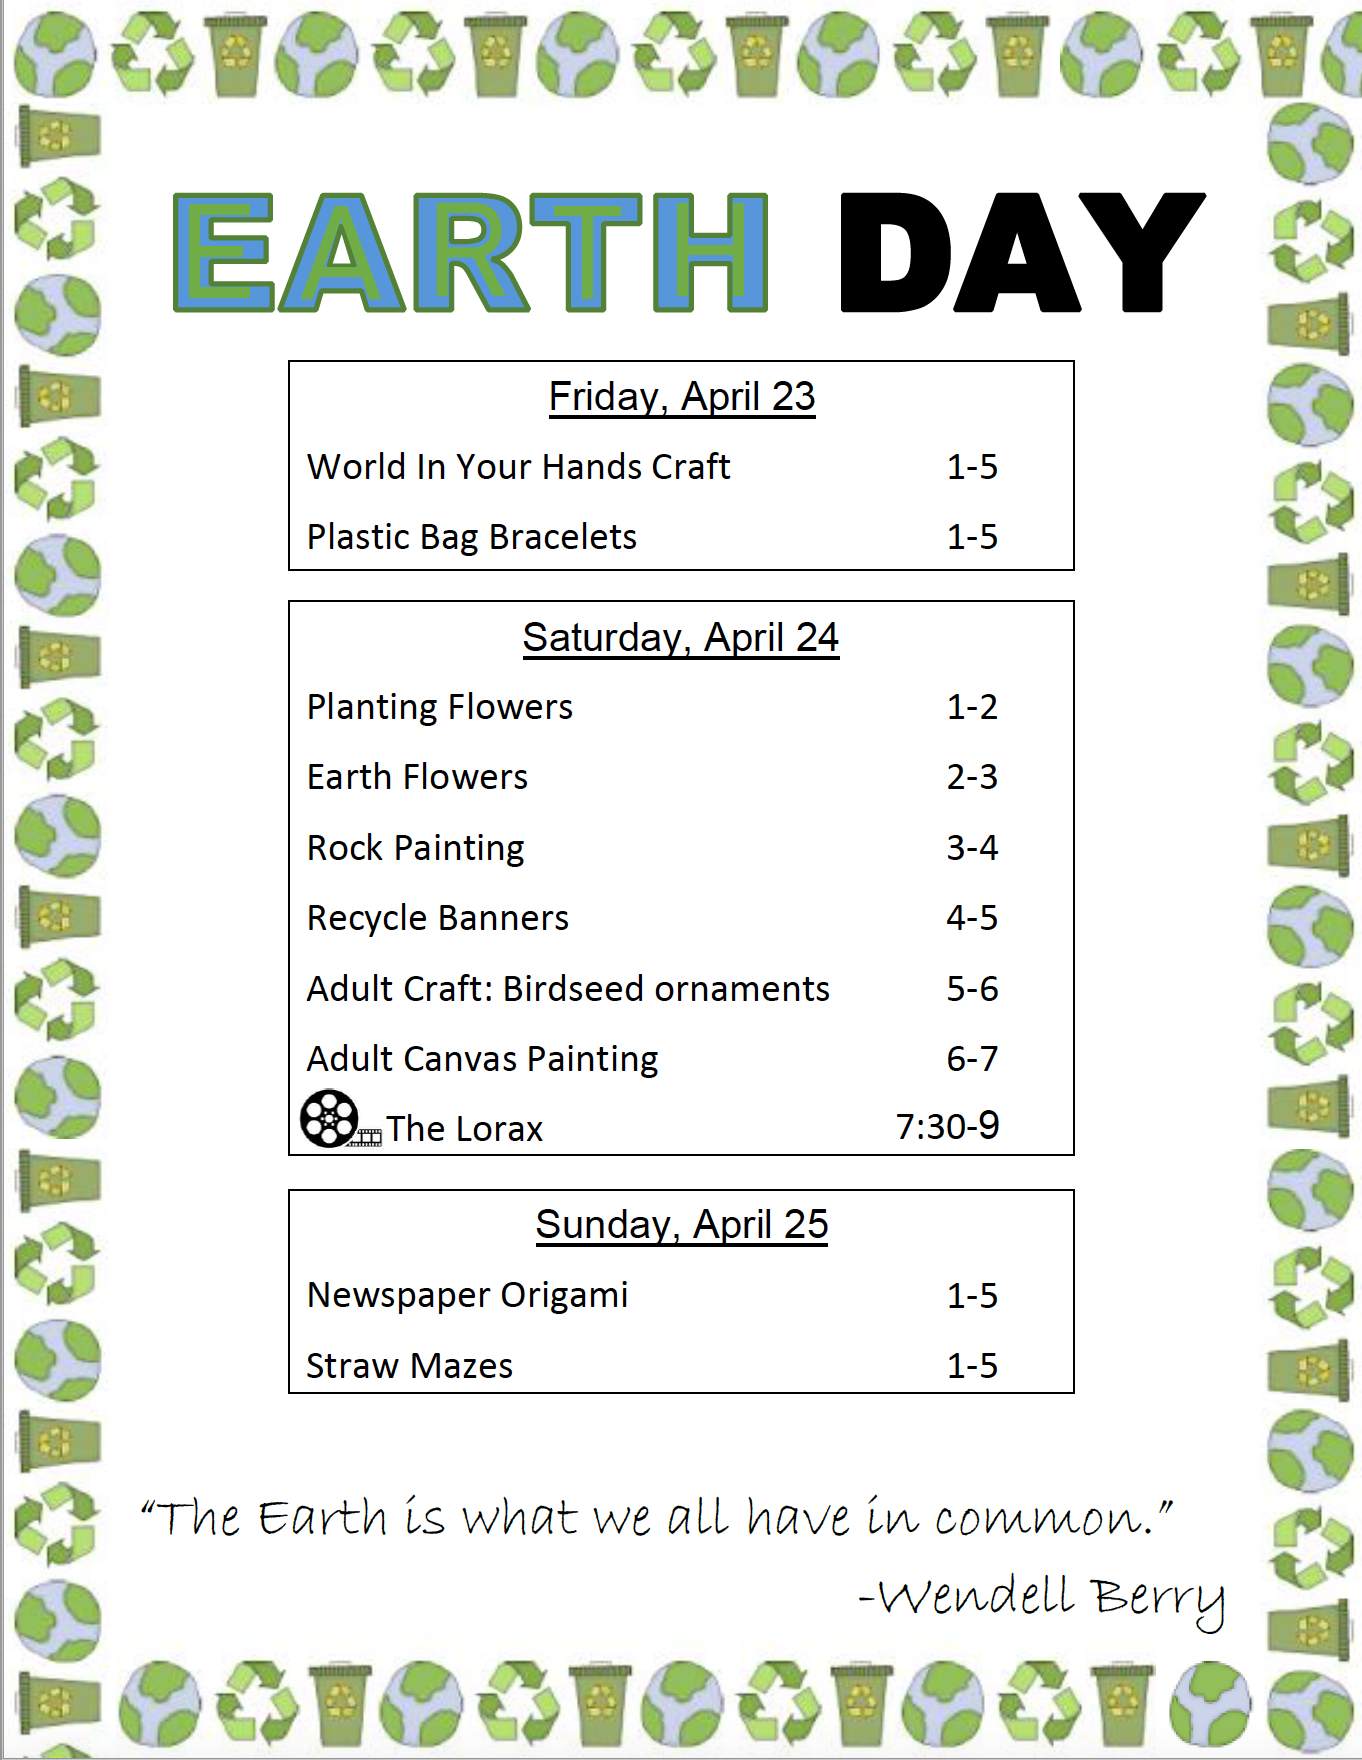 Earth Day VOR 2021